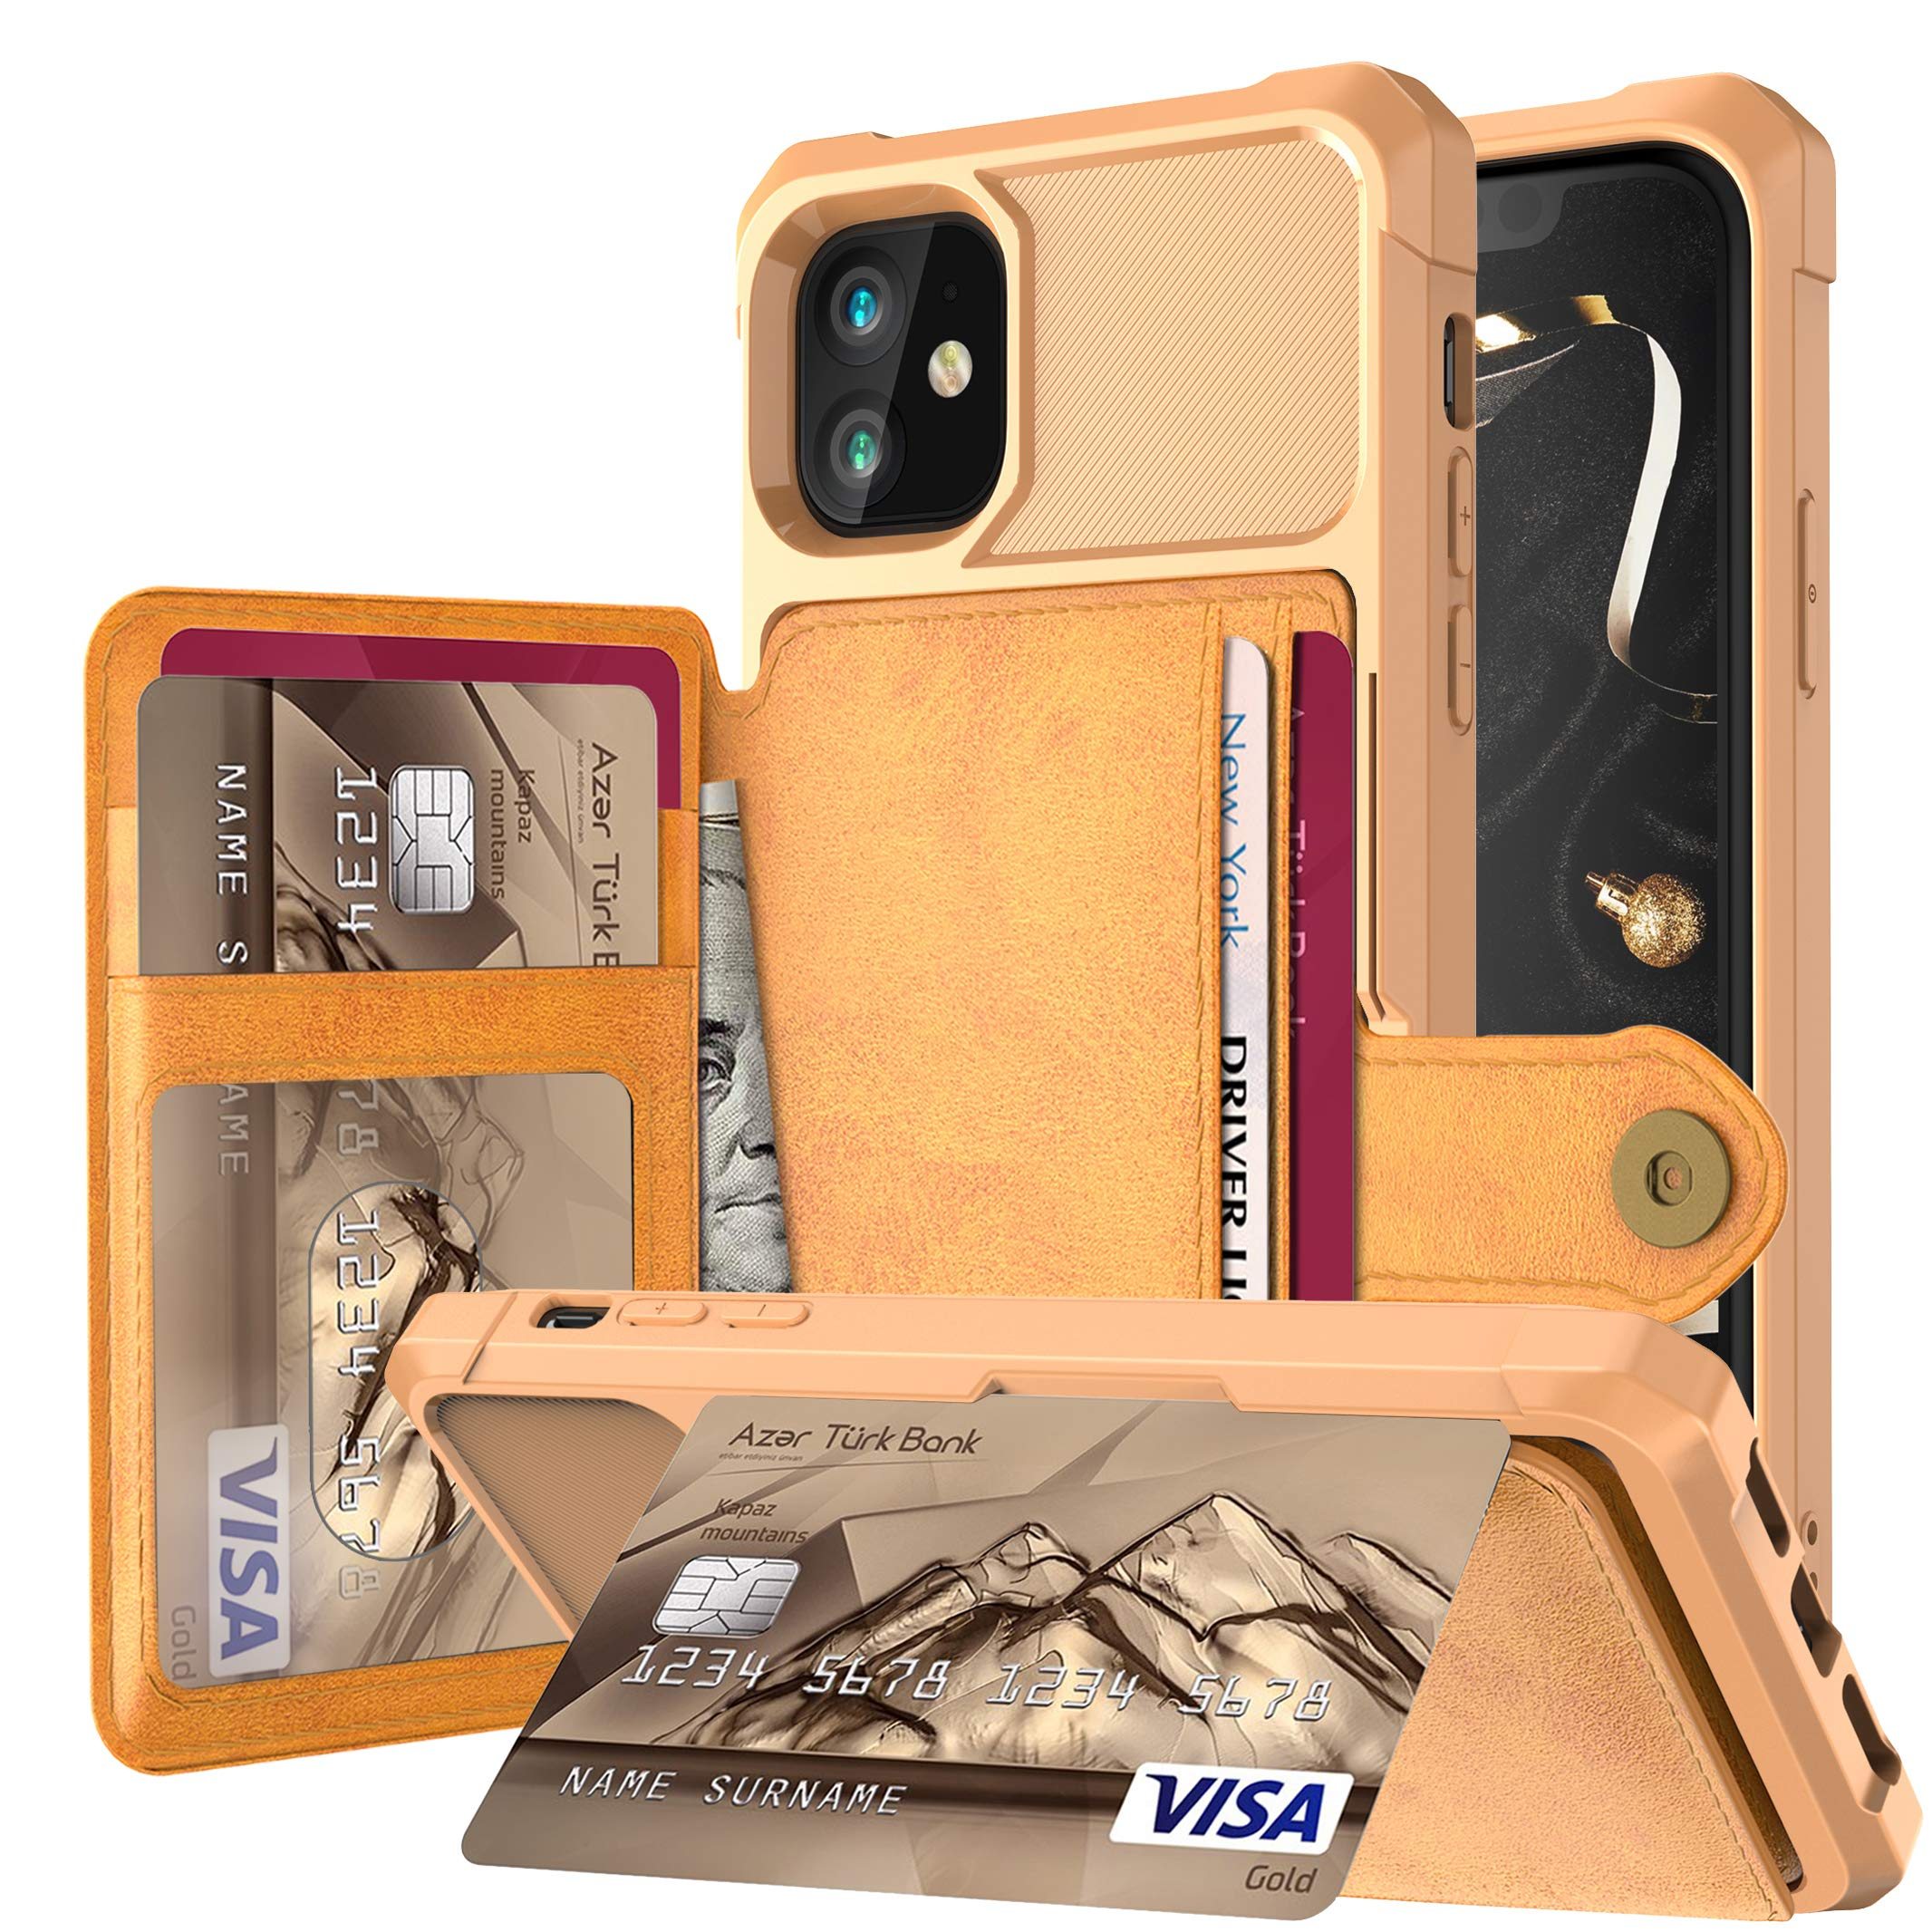 iPhone 11 6.1 Inch Case, Futanwei Credit Card Kickstand Buttons Wallet Premium Leather Flip Card Slots [Fit Magnetic Car Mount] Rubber Defender Phone Case for iPhone 11 2019, Gold by Futanwei